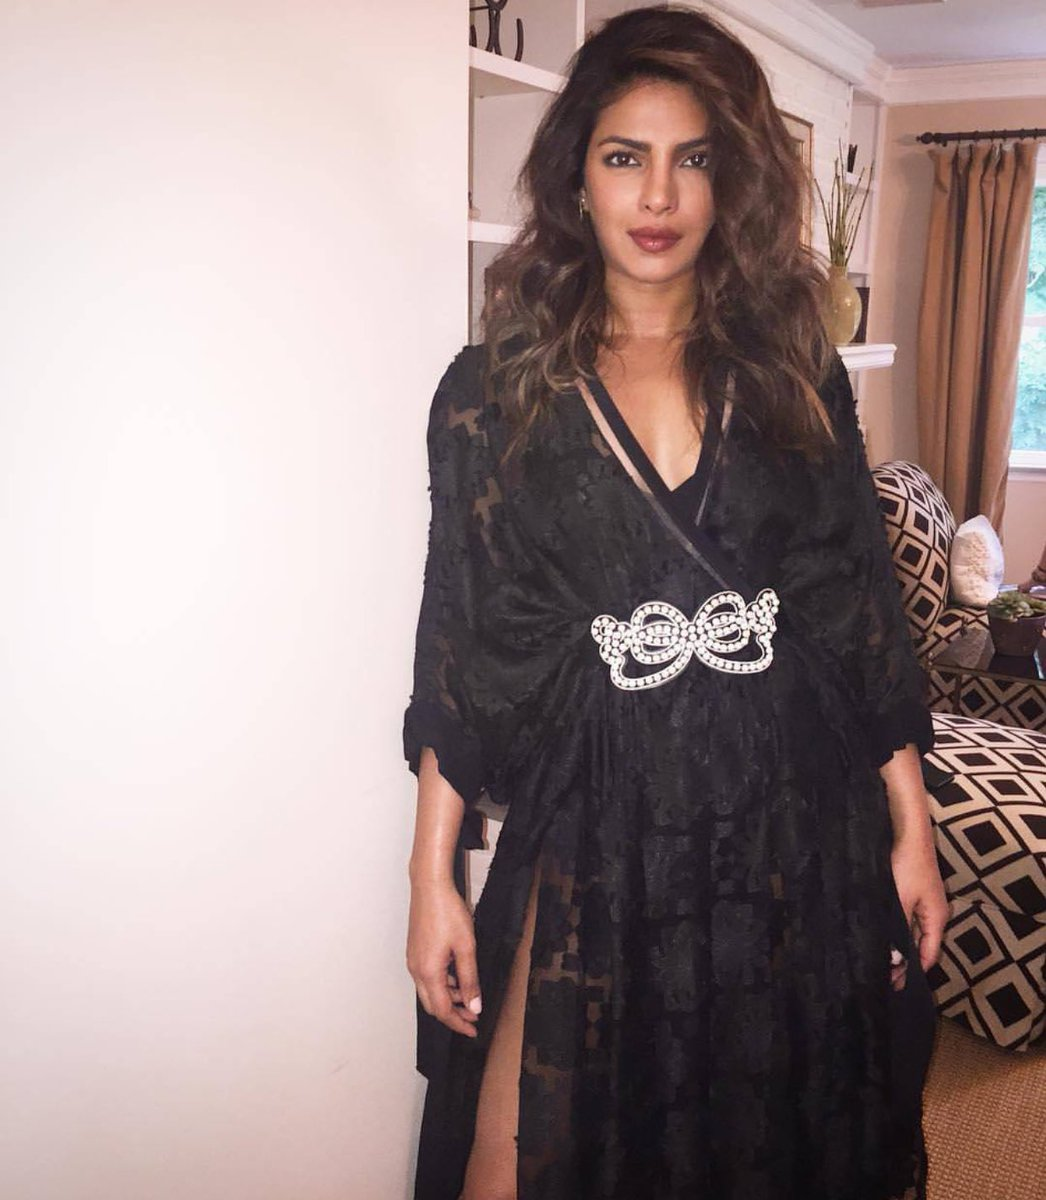 Priyanka Chopra Looked Breathtaking in Black Sexy Dress